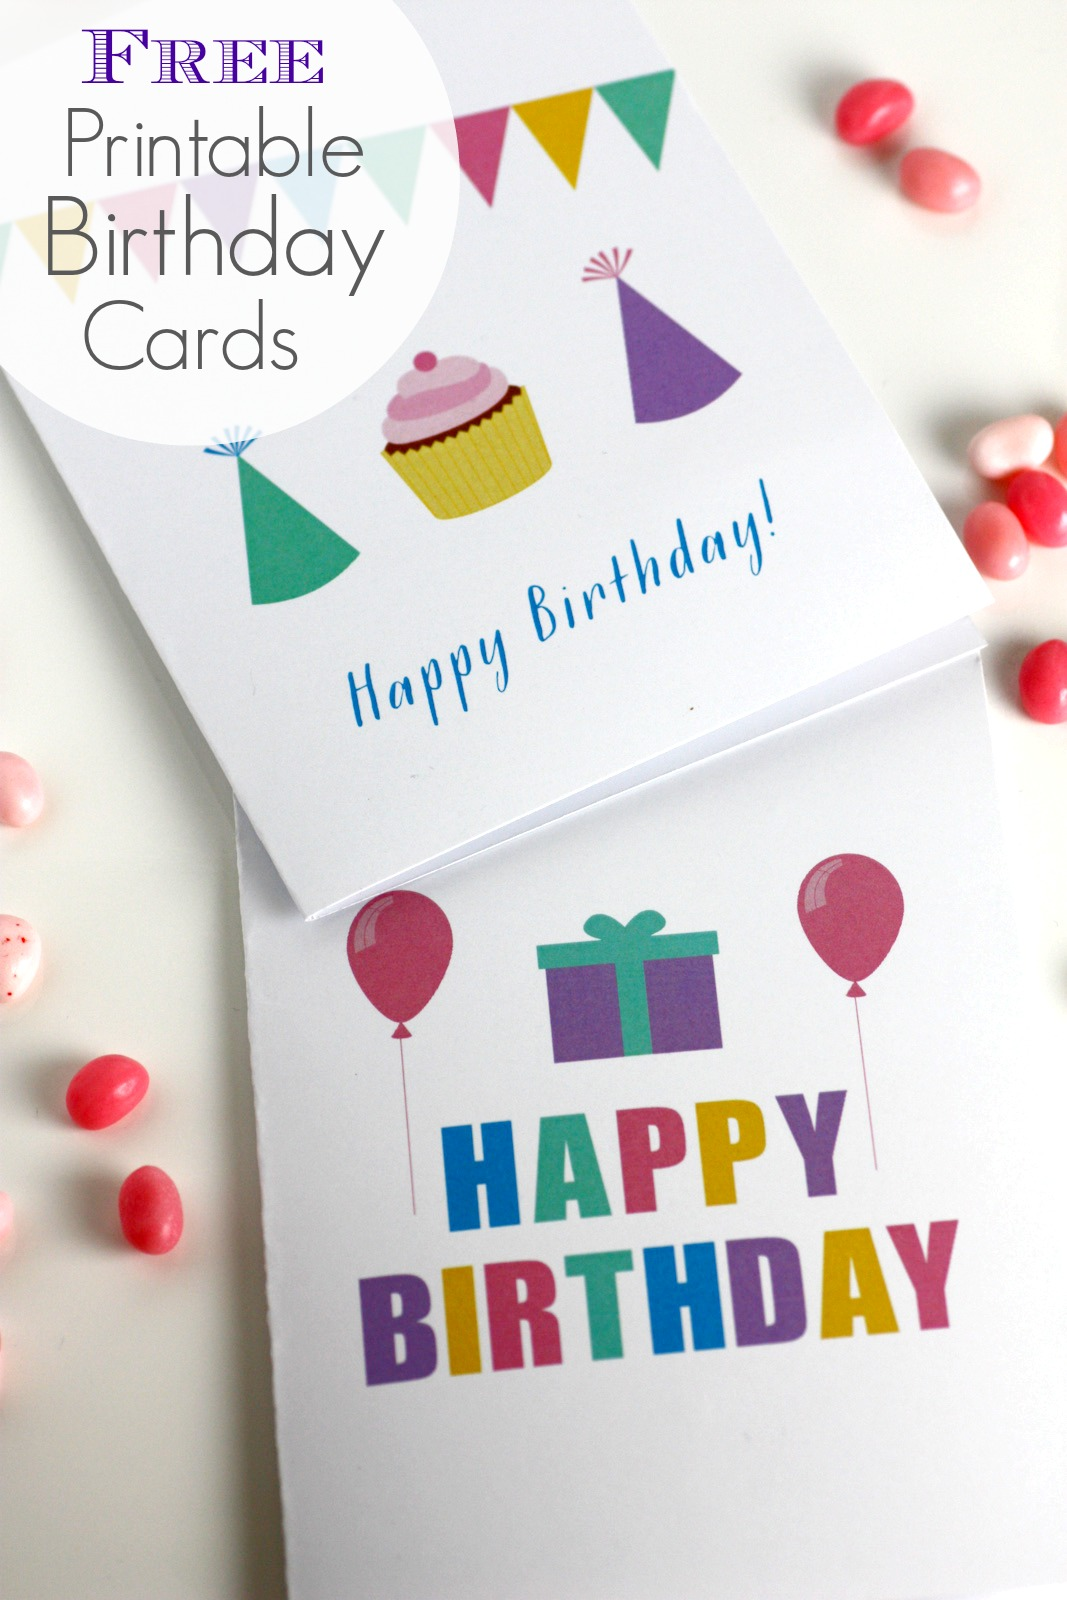 Printable Birthday Card Free gangcraftnet – Birthday Cards Pics Free